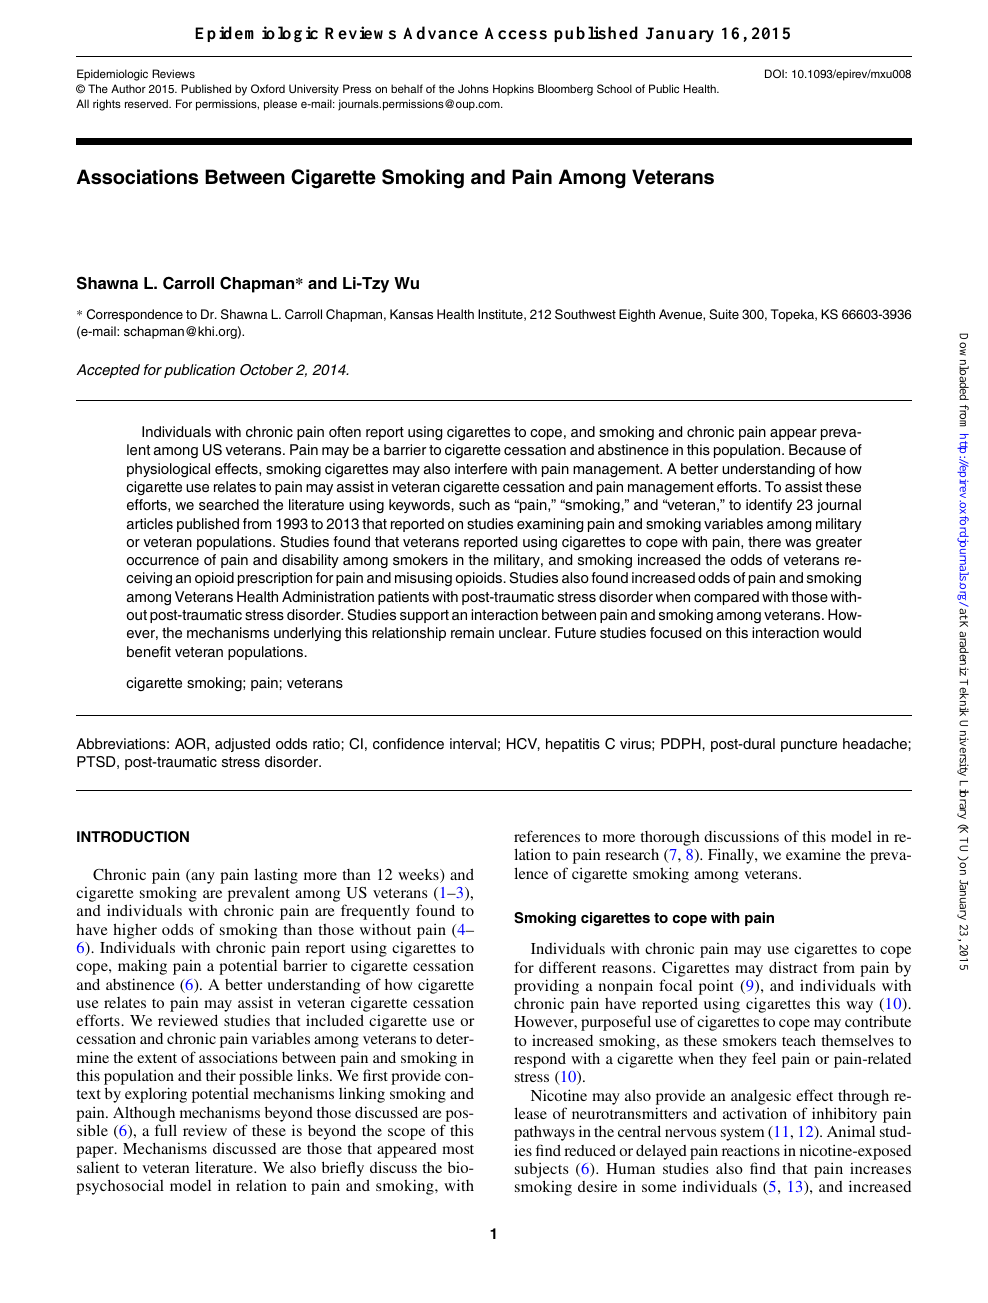 Associations Between Cigarette Smoking and Pain Among